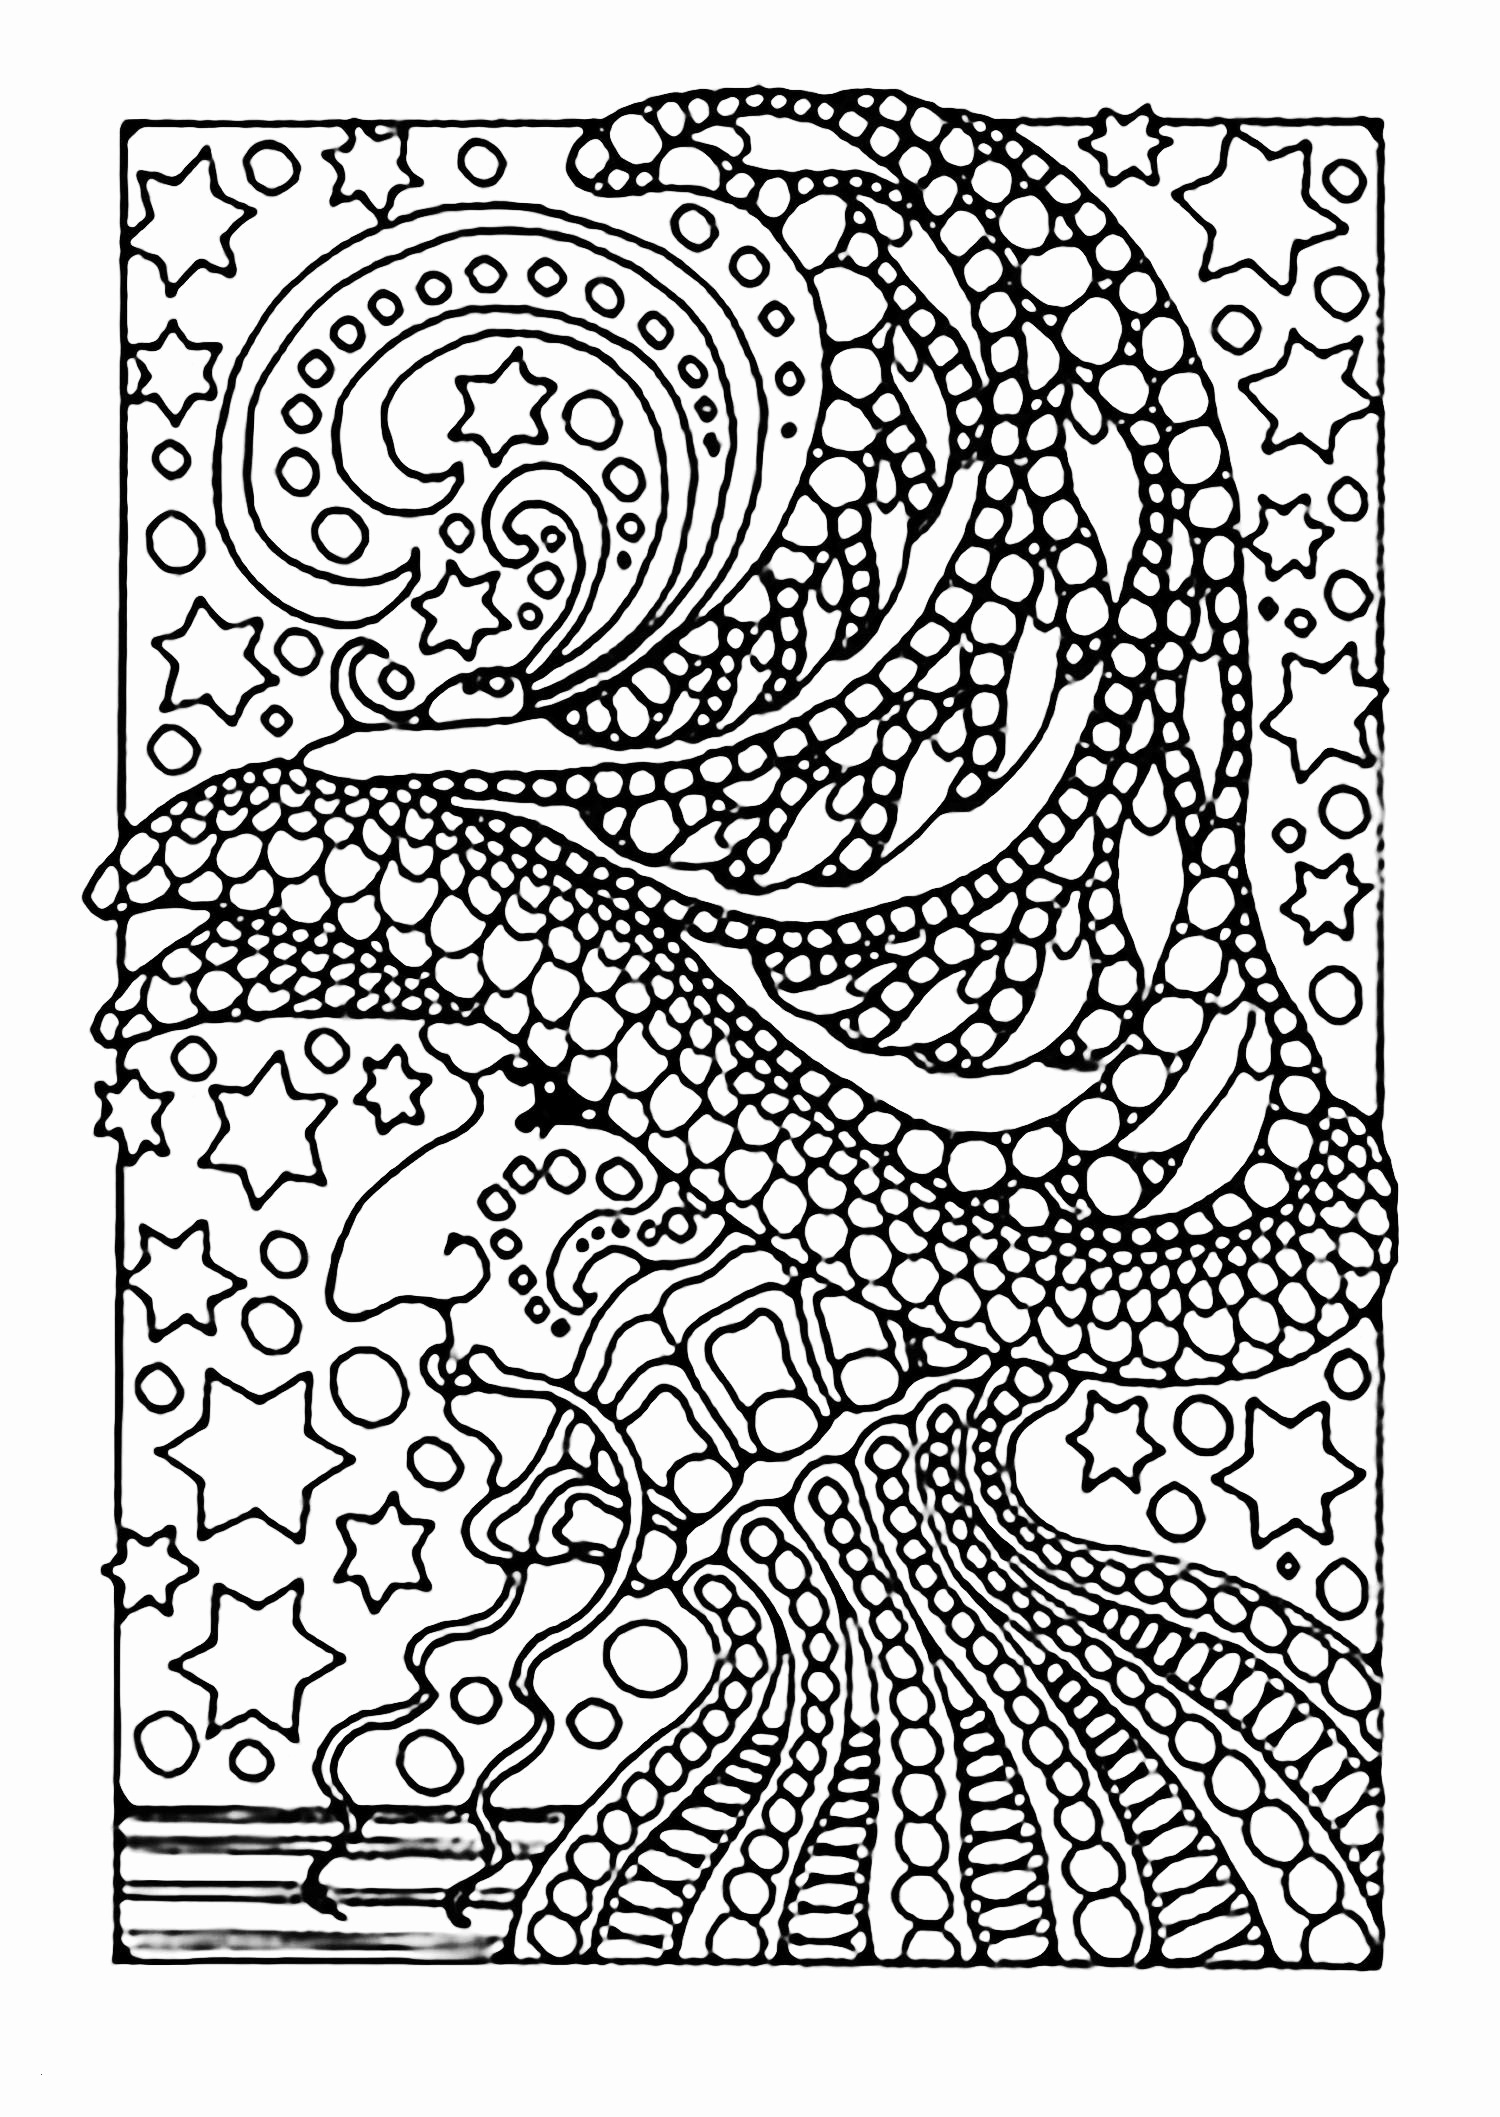 Kindness Coloring Pages  Gallery 12g - To print for your project